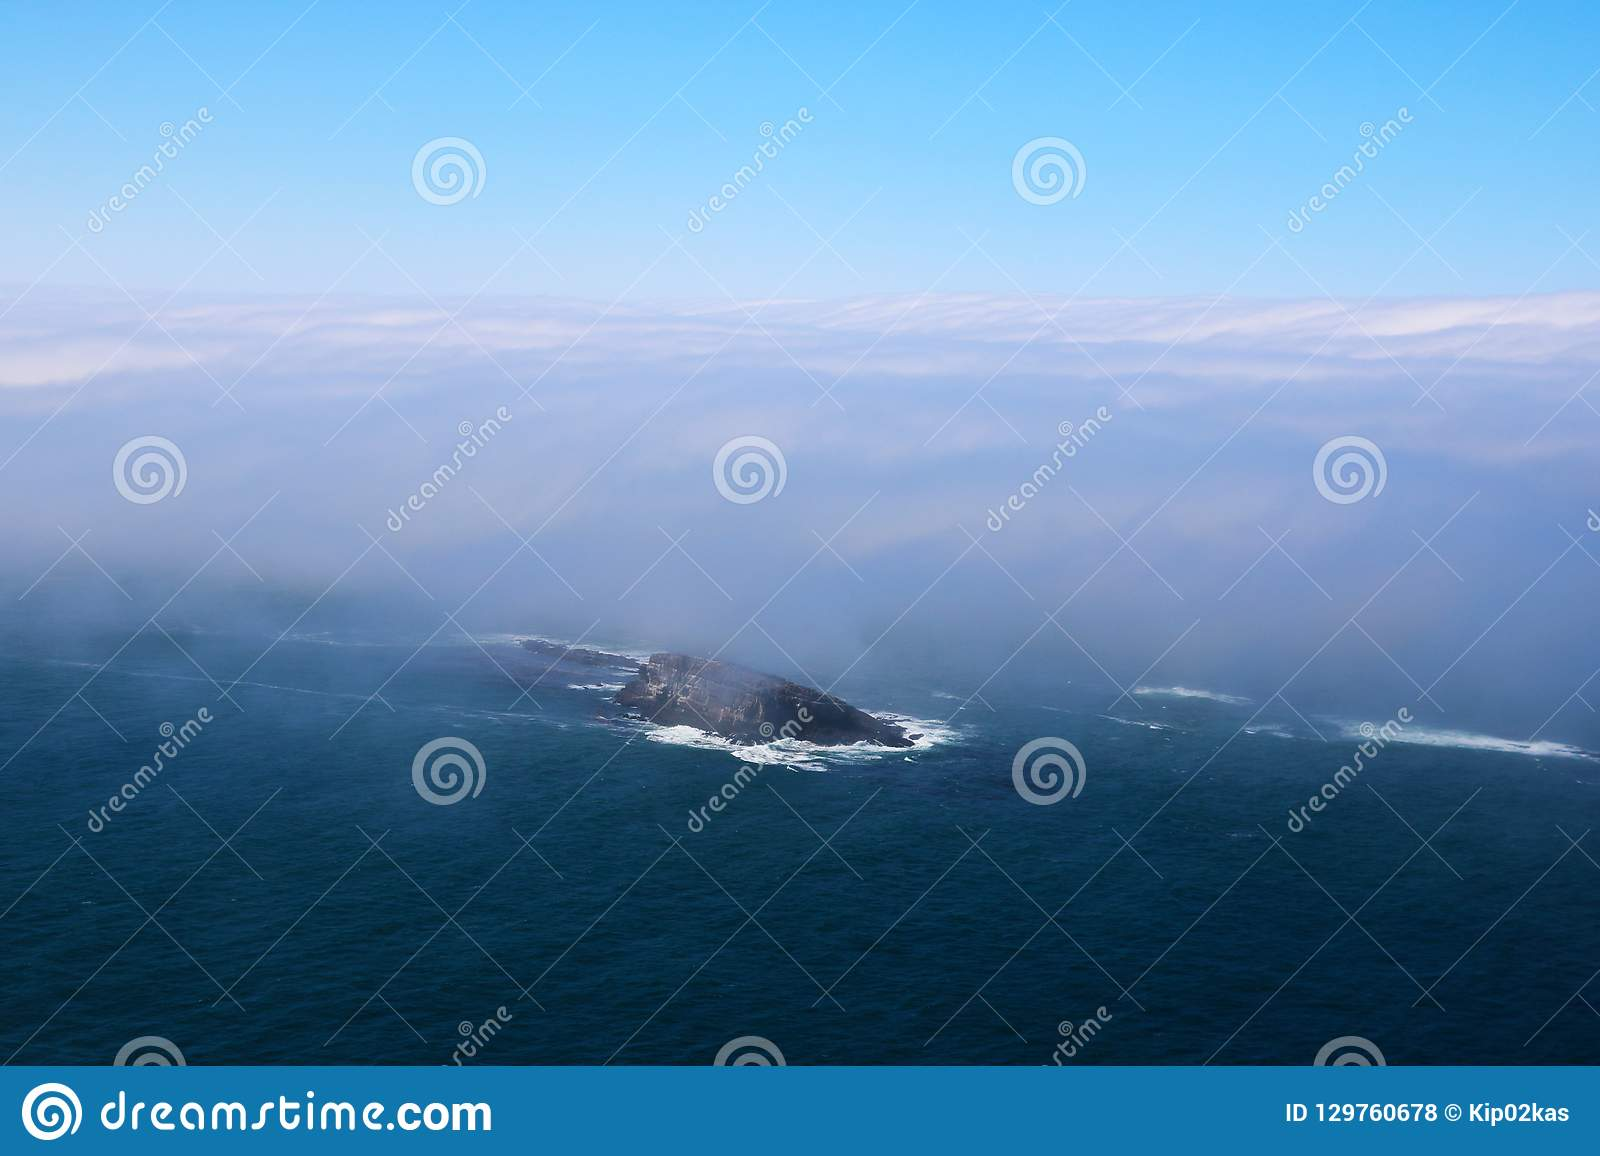 Early morning in the pacific ocean, view from above